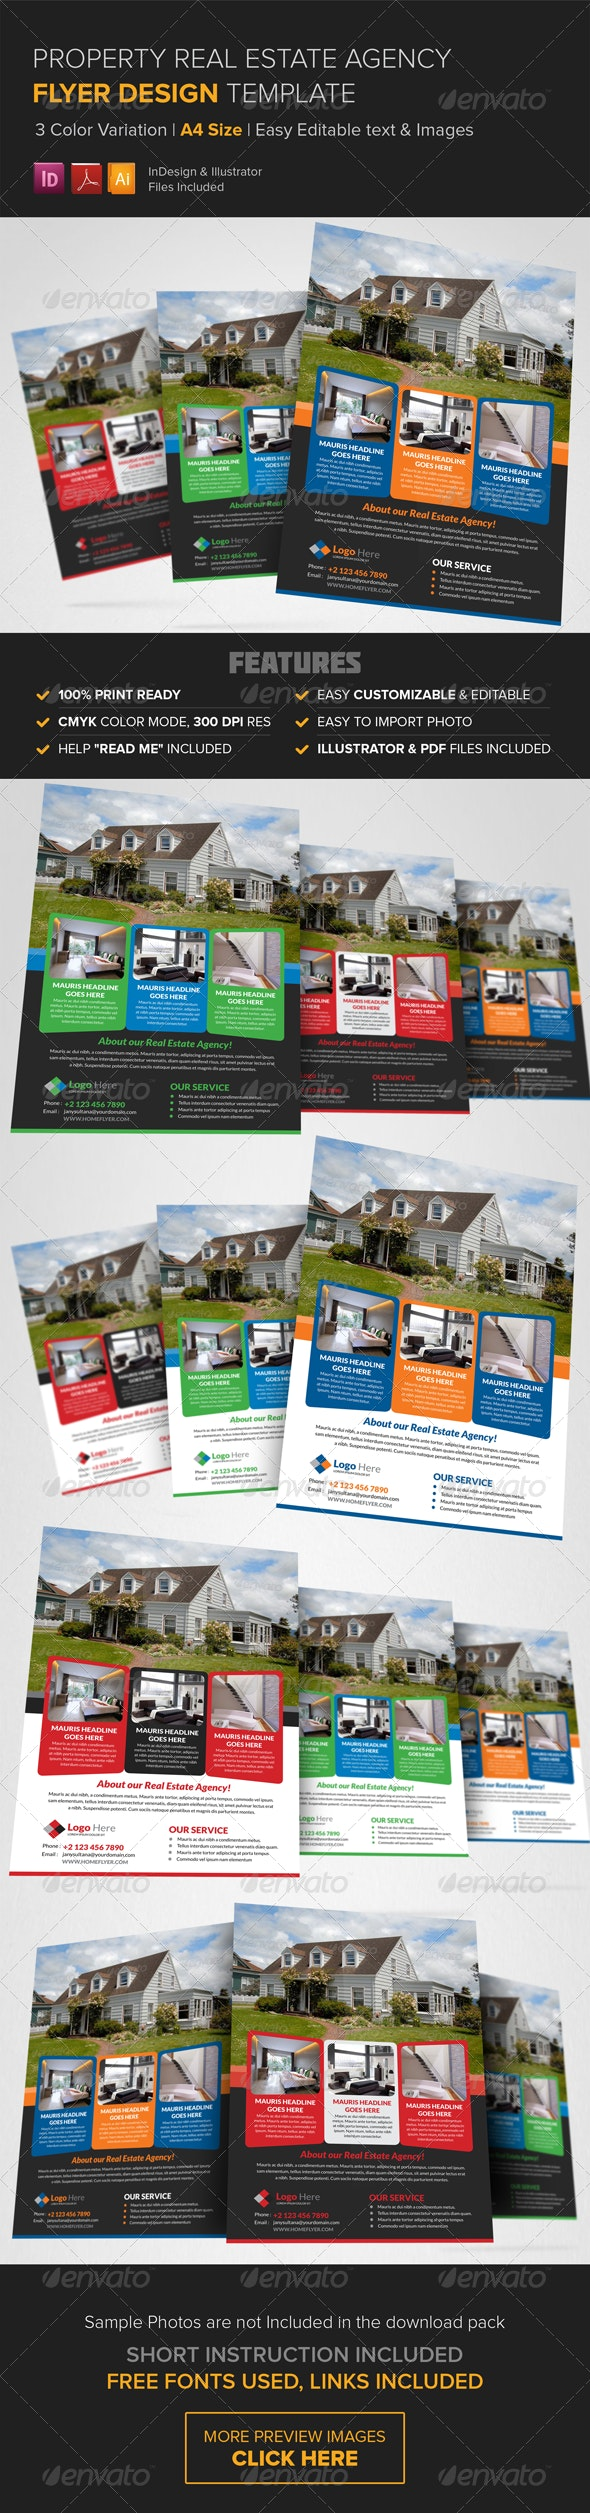 Property Real Estate Agency Flyer Template - Commerce Flyers